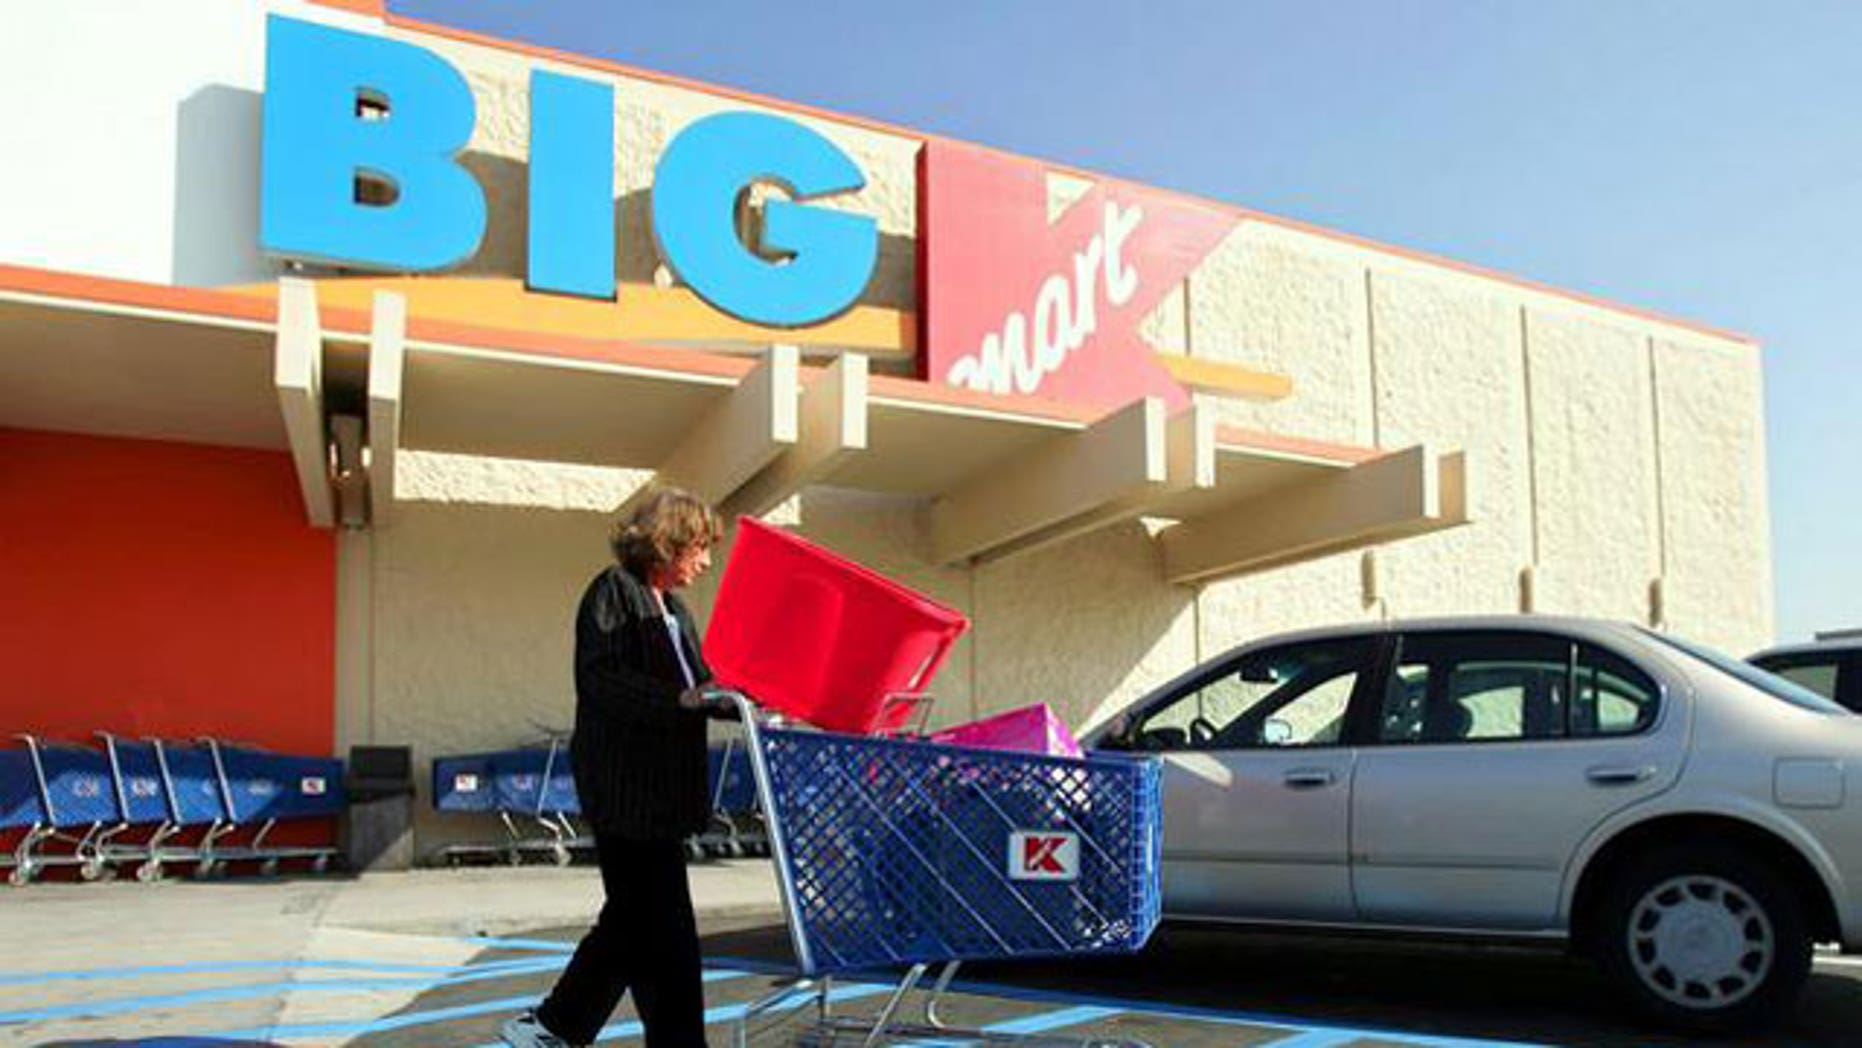 Kmart Bounces Back to Hold Its Own Against Bigger Competitors in ...